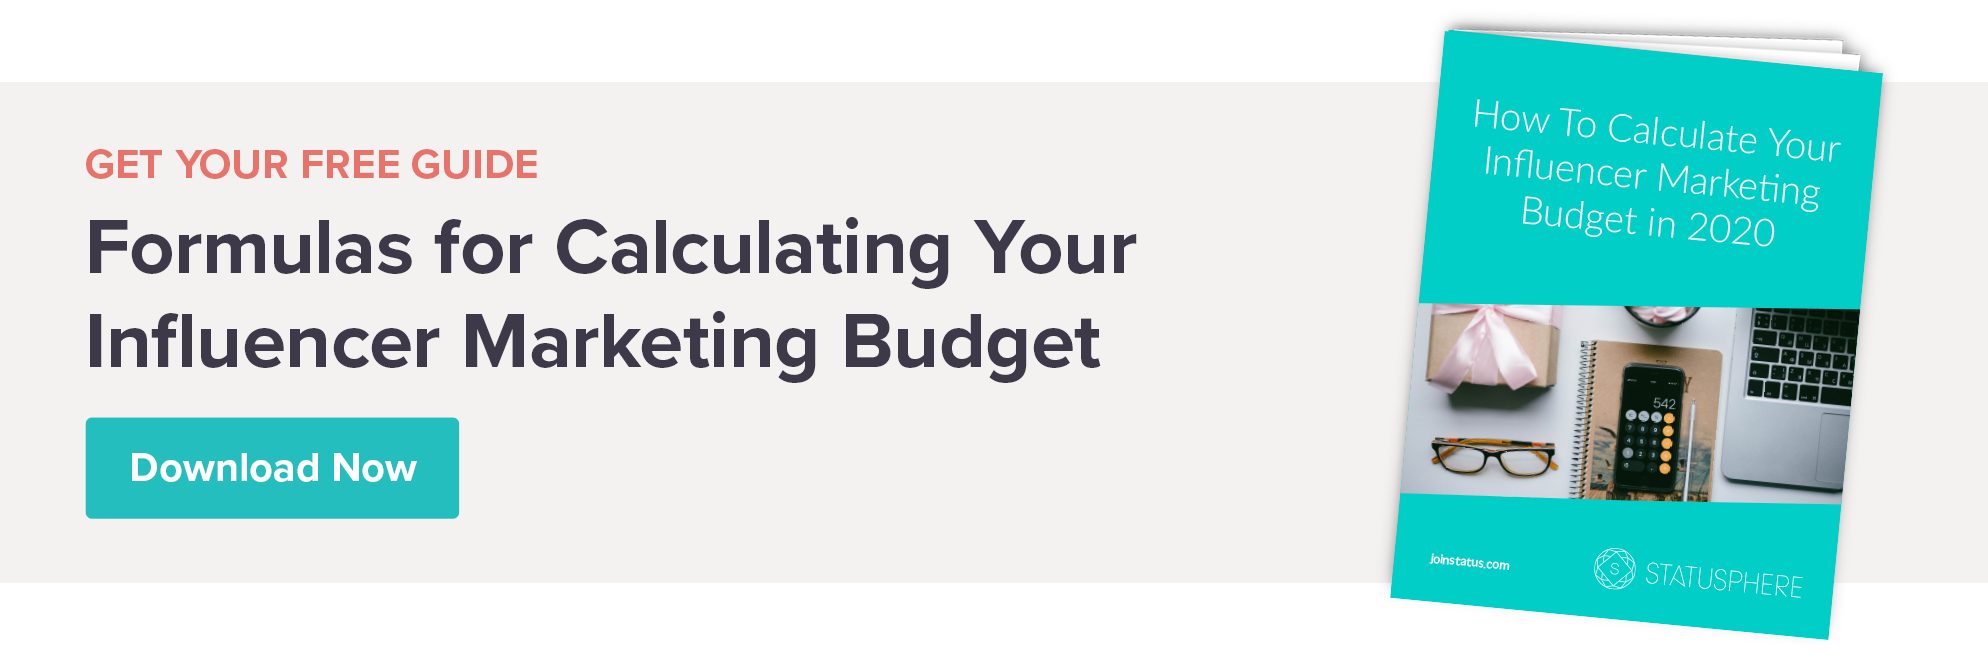 How to Calculate Your Influencer Marketing Budget in 2020